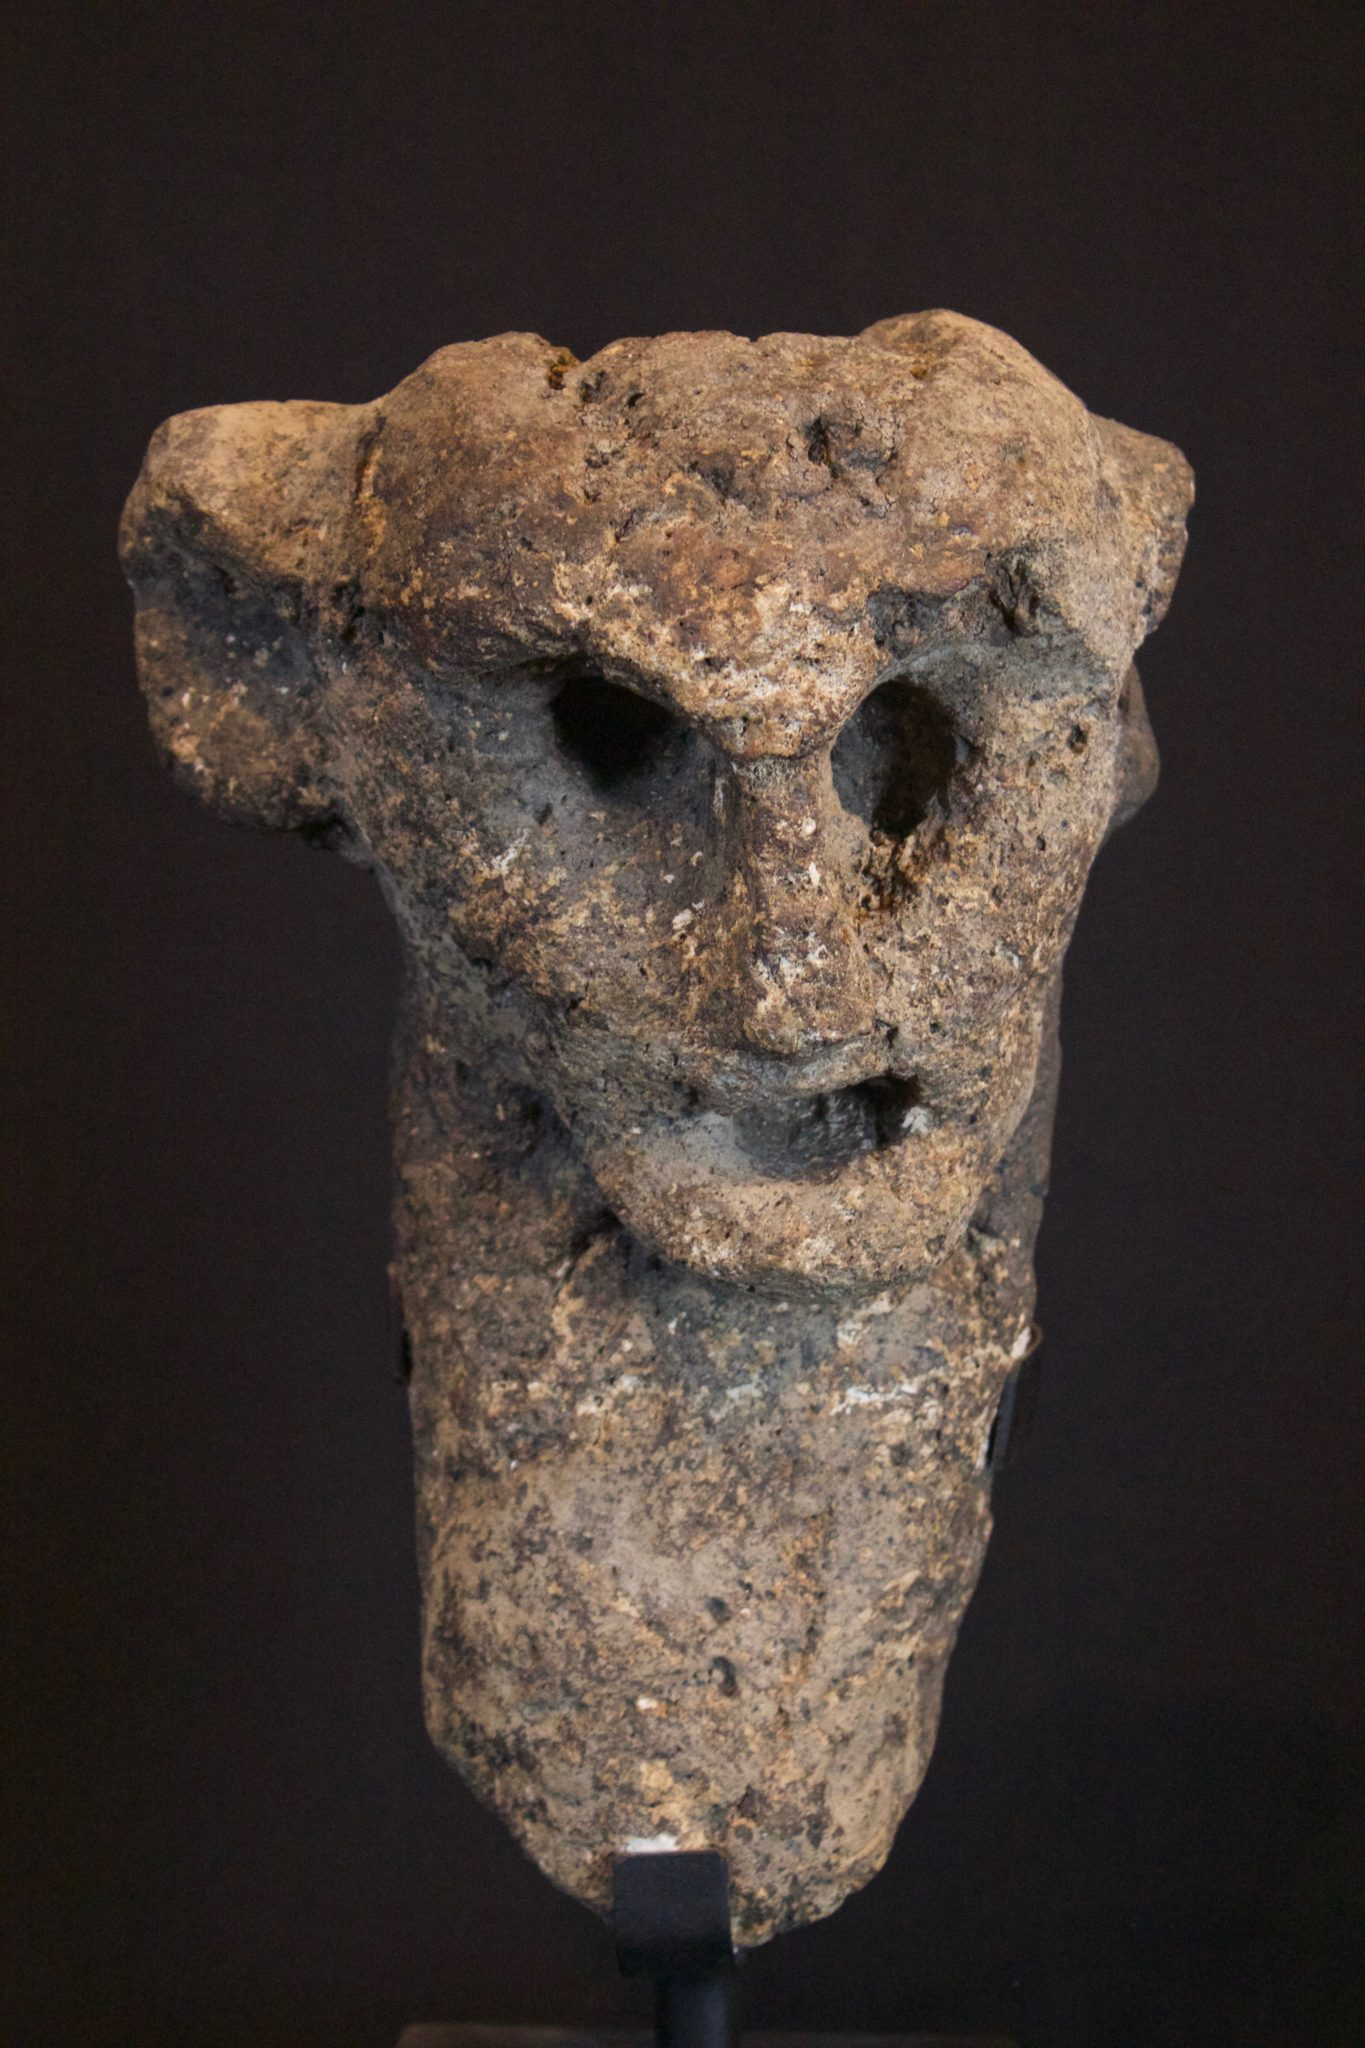 "Shaman's Effigy Figure, West Flores Island, Lesser Sunda Islands, Indonesia, Bena village, Early to mid 10th c. Stone, Used by shaman for healing and divination. 11 ½"" x 7 ½"" x 5 ½"", Sold"